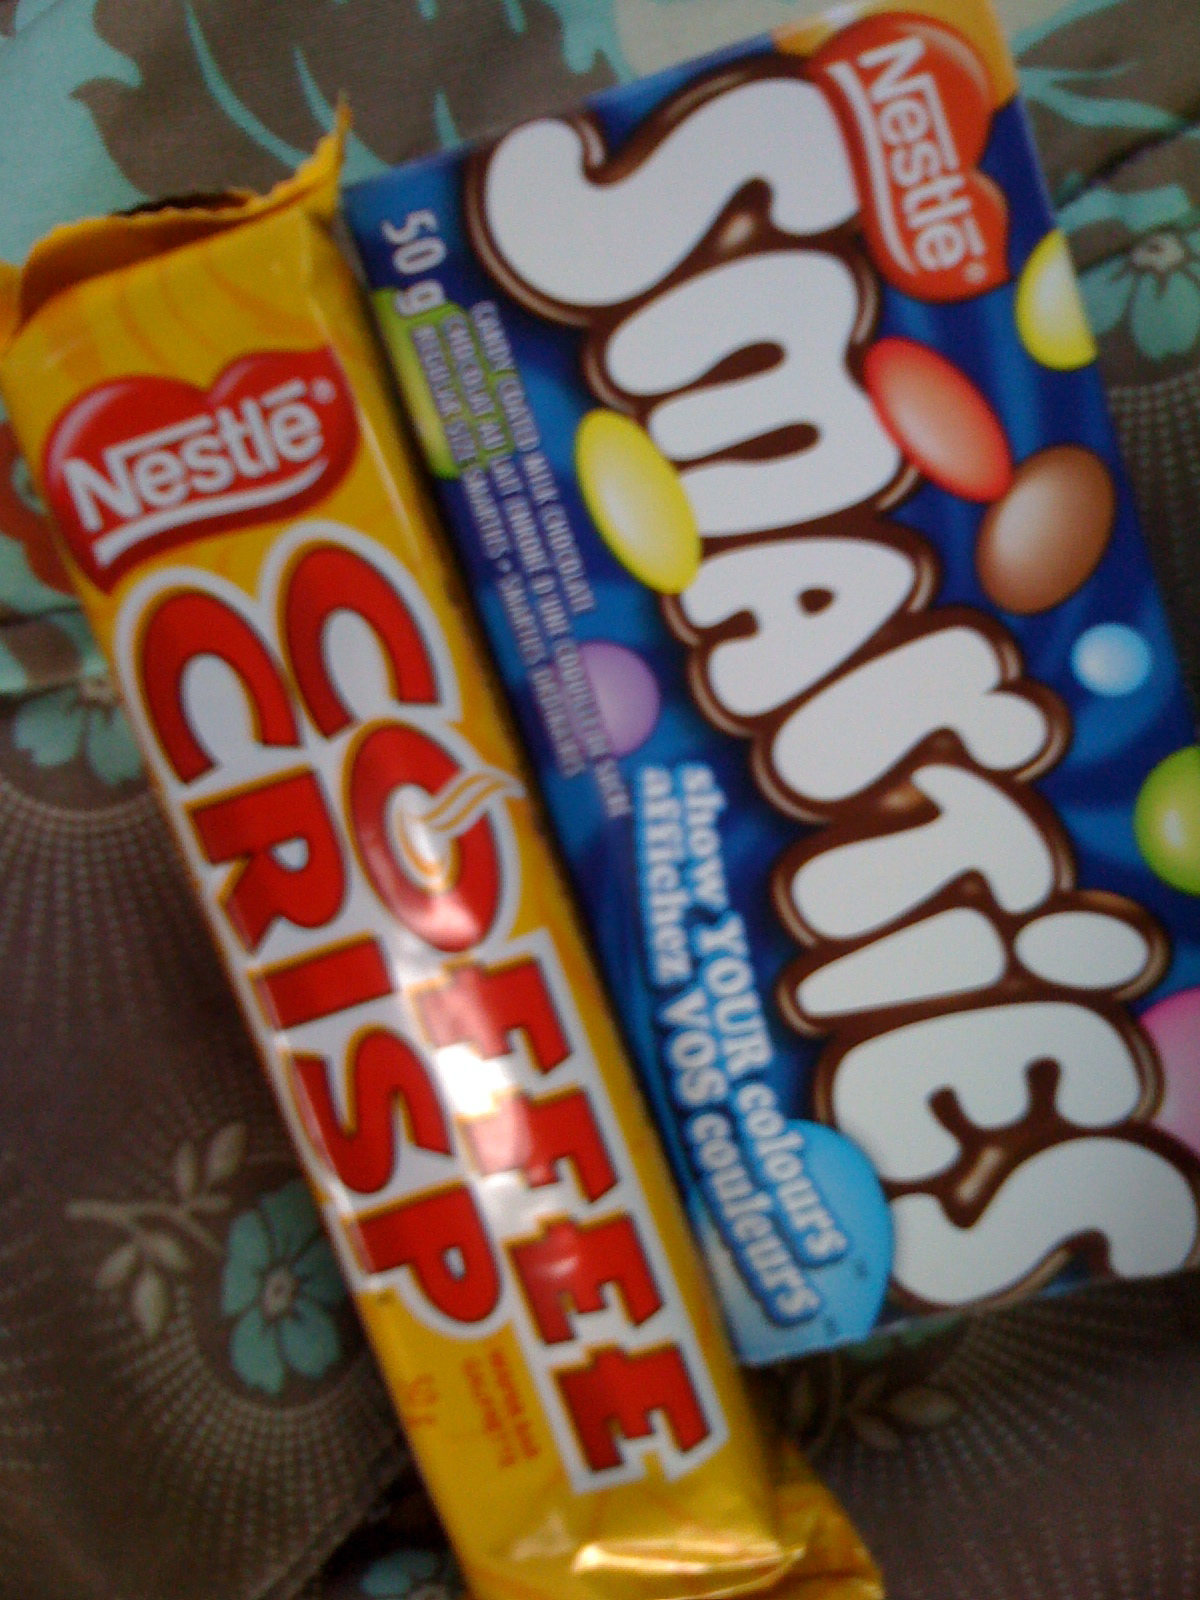 Nestle's yummy candy from Canada